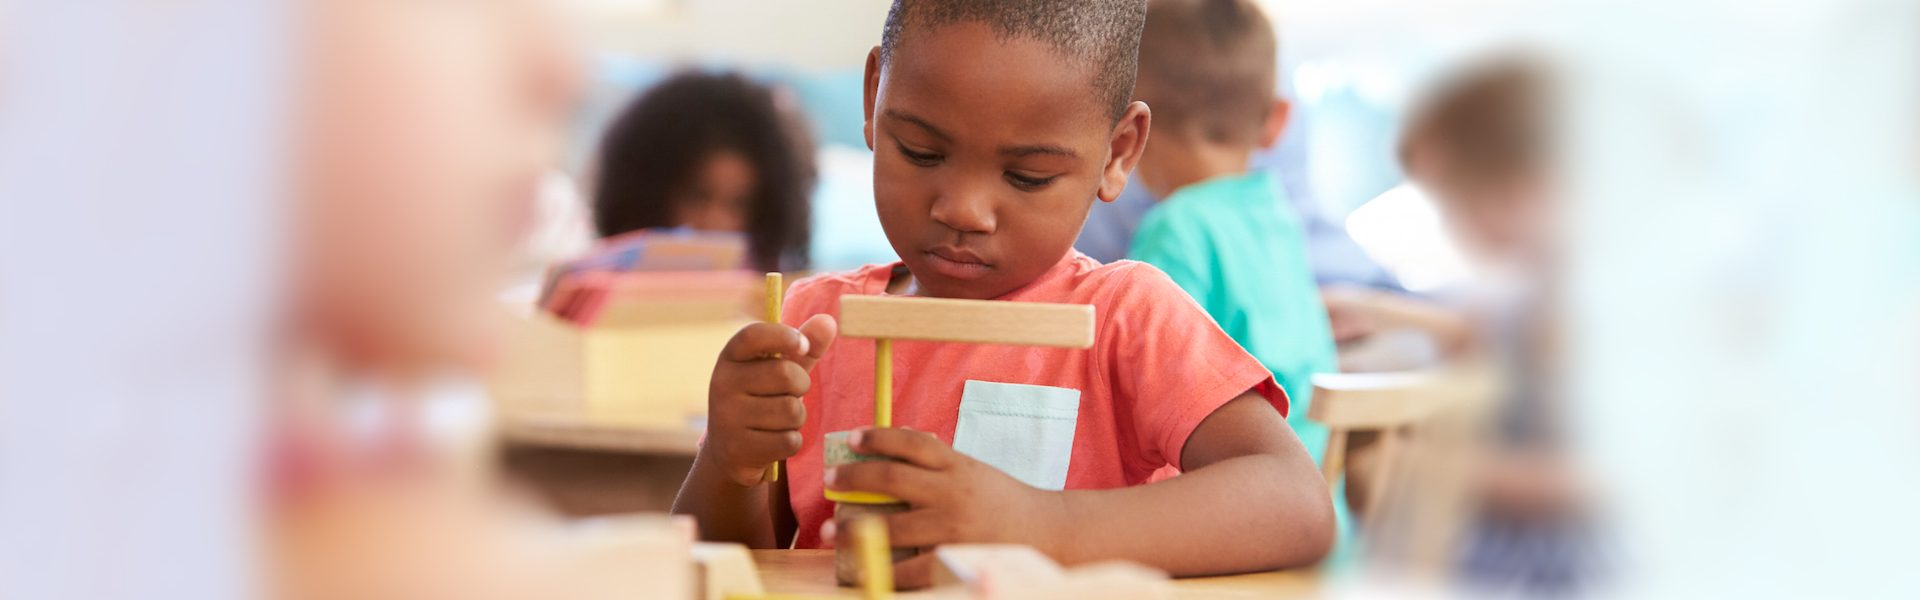 Let's Start at the Very Beginning: Montessori for Infants